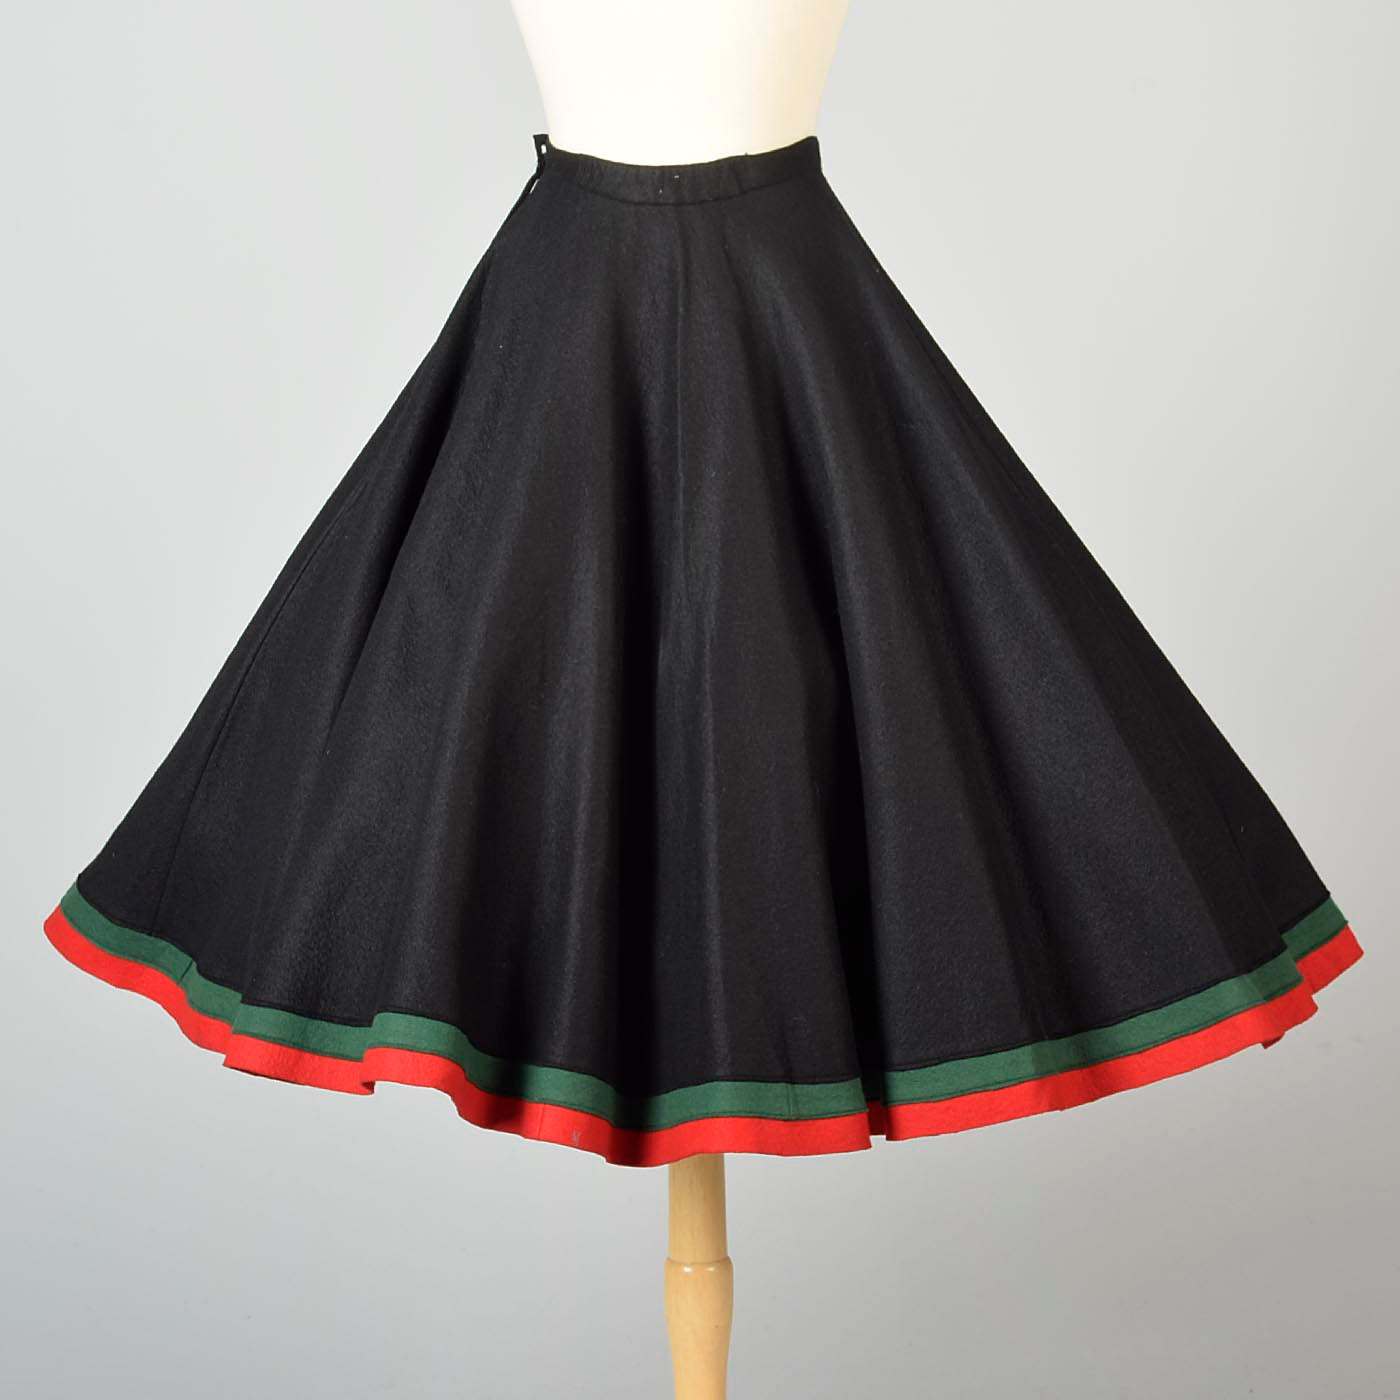 1950s Black Circle Skirt with Felt Flowers